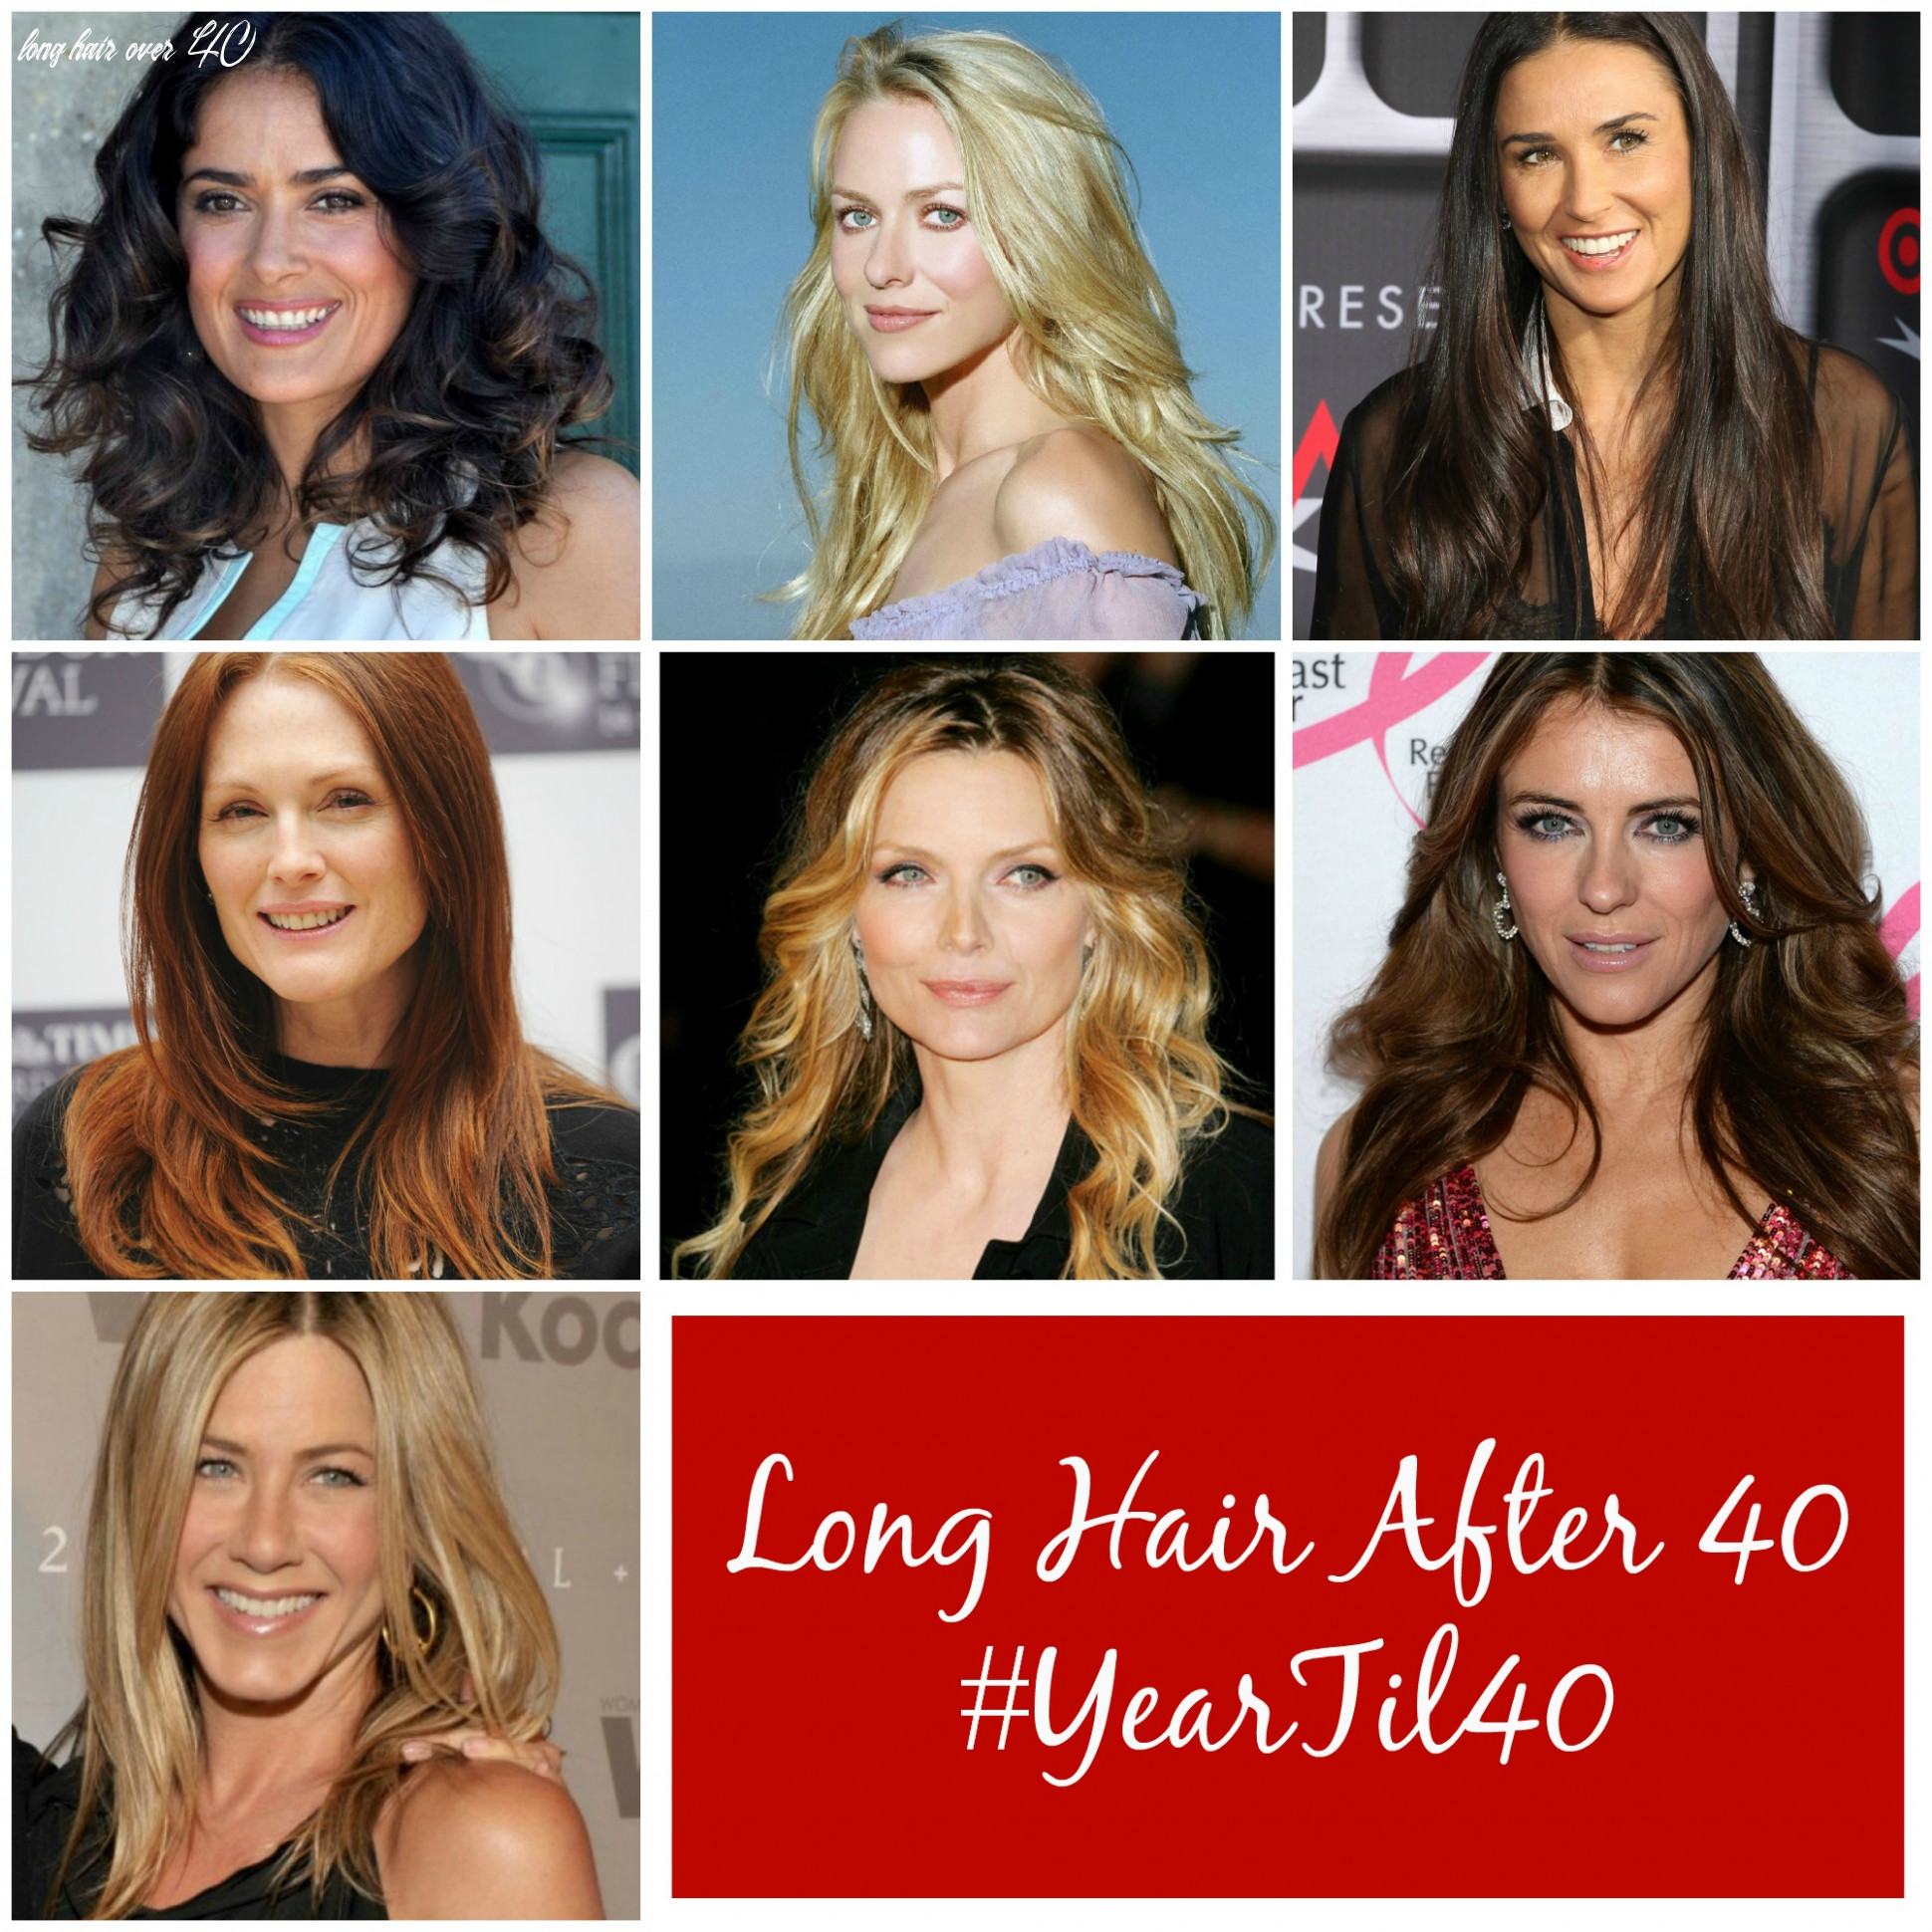 Should women over 11 have long hair? #yeartil11 long hair over 40